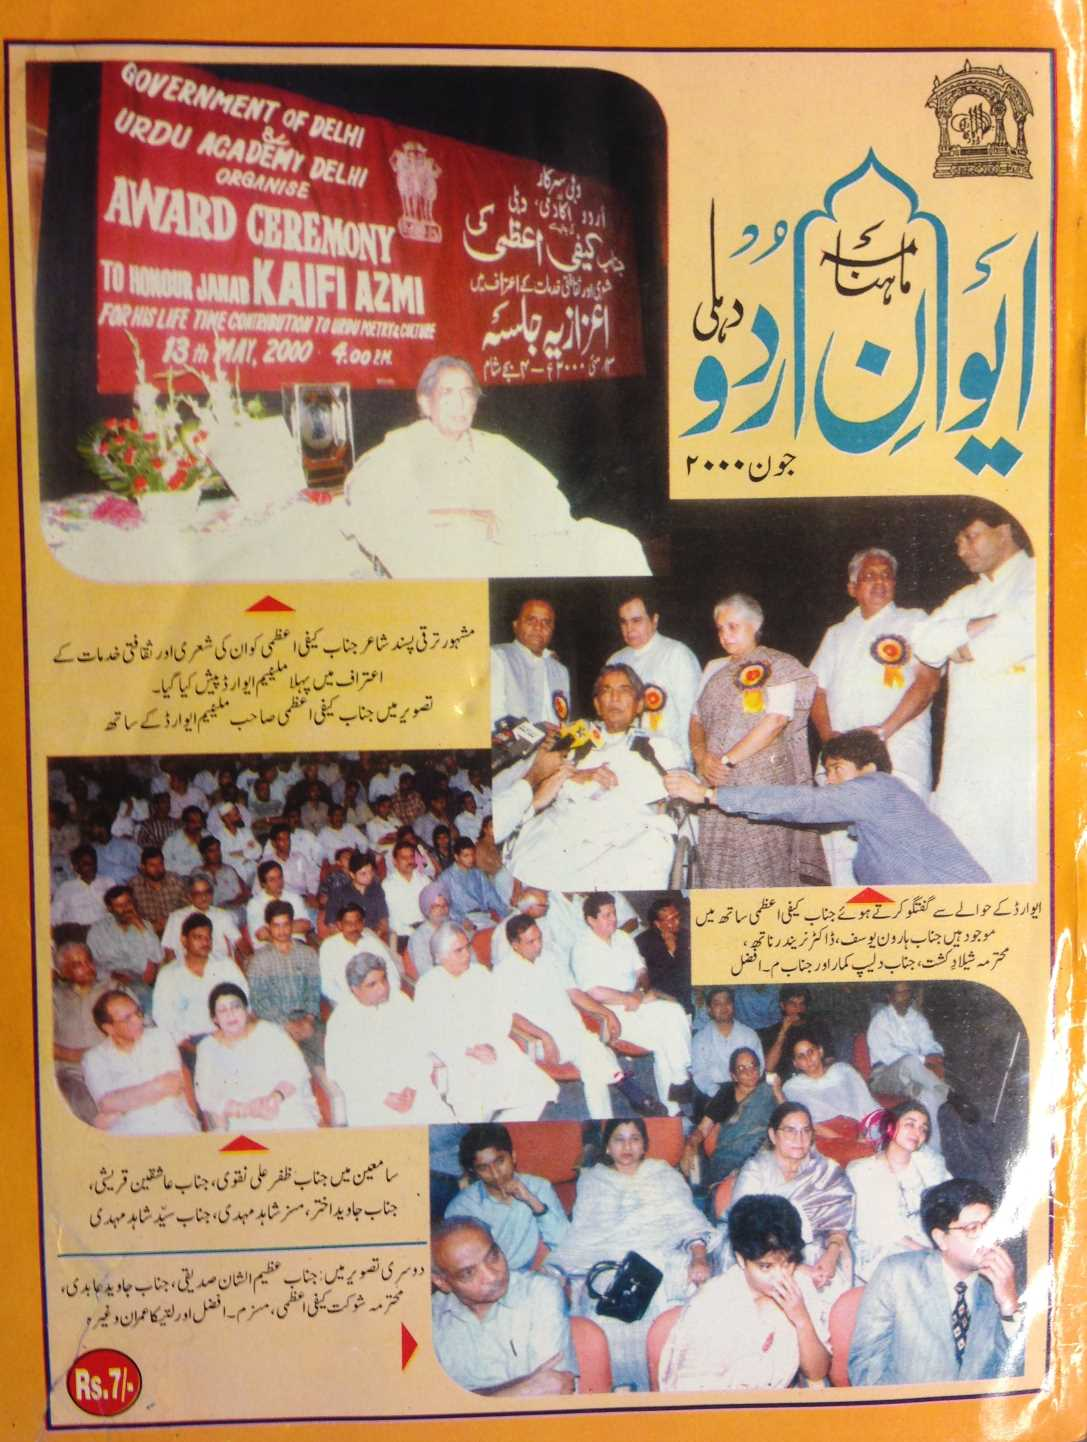 Award Ceremoney Aiwaan-e-Urdu - New Delhi - 2000